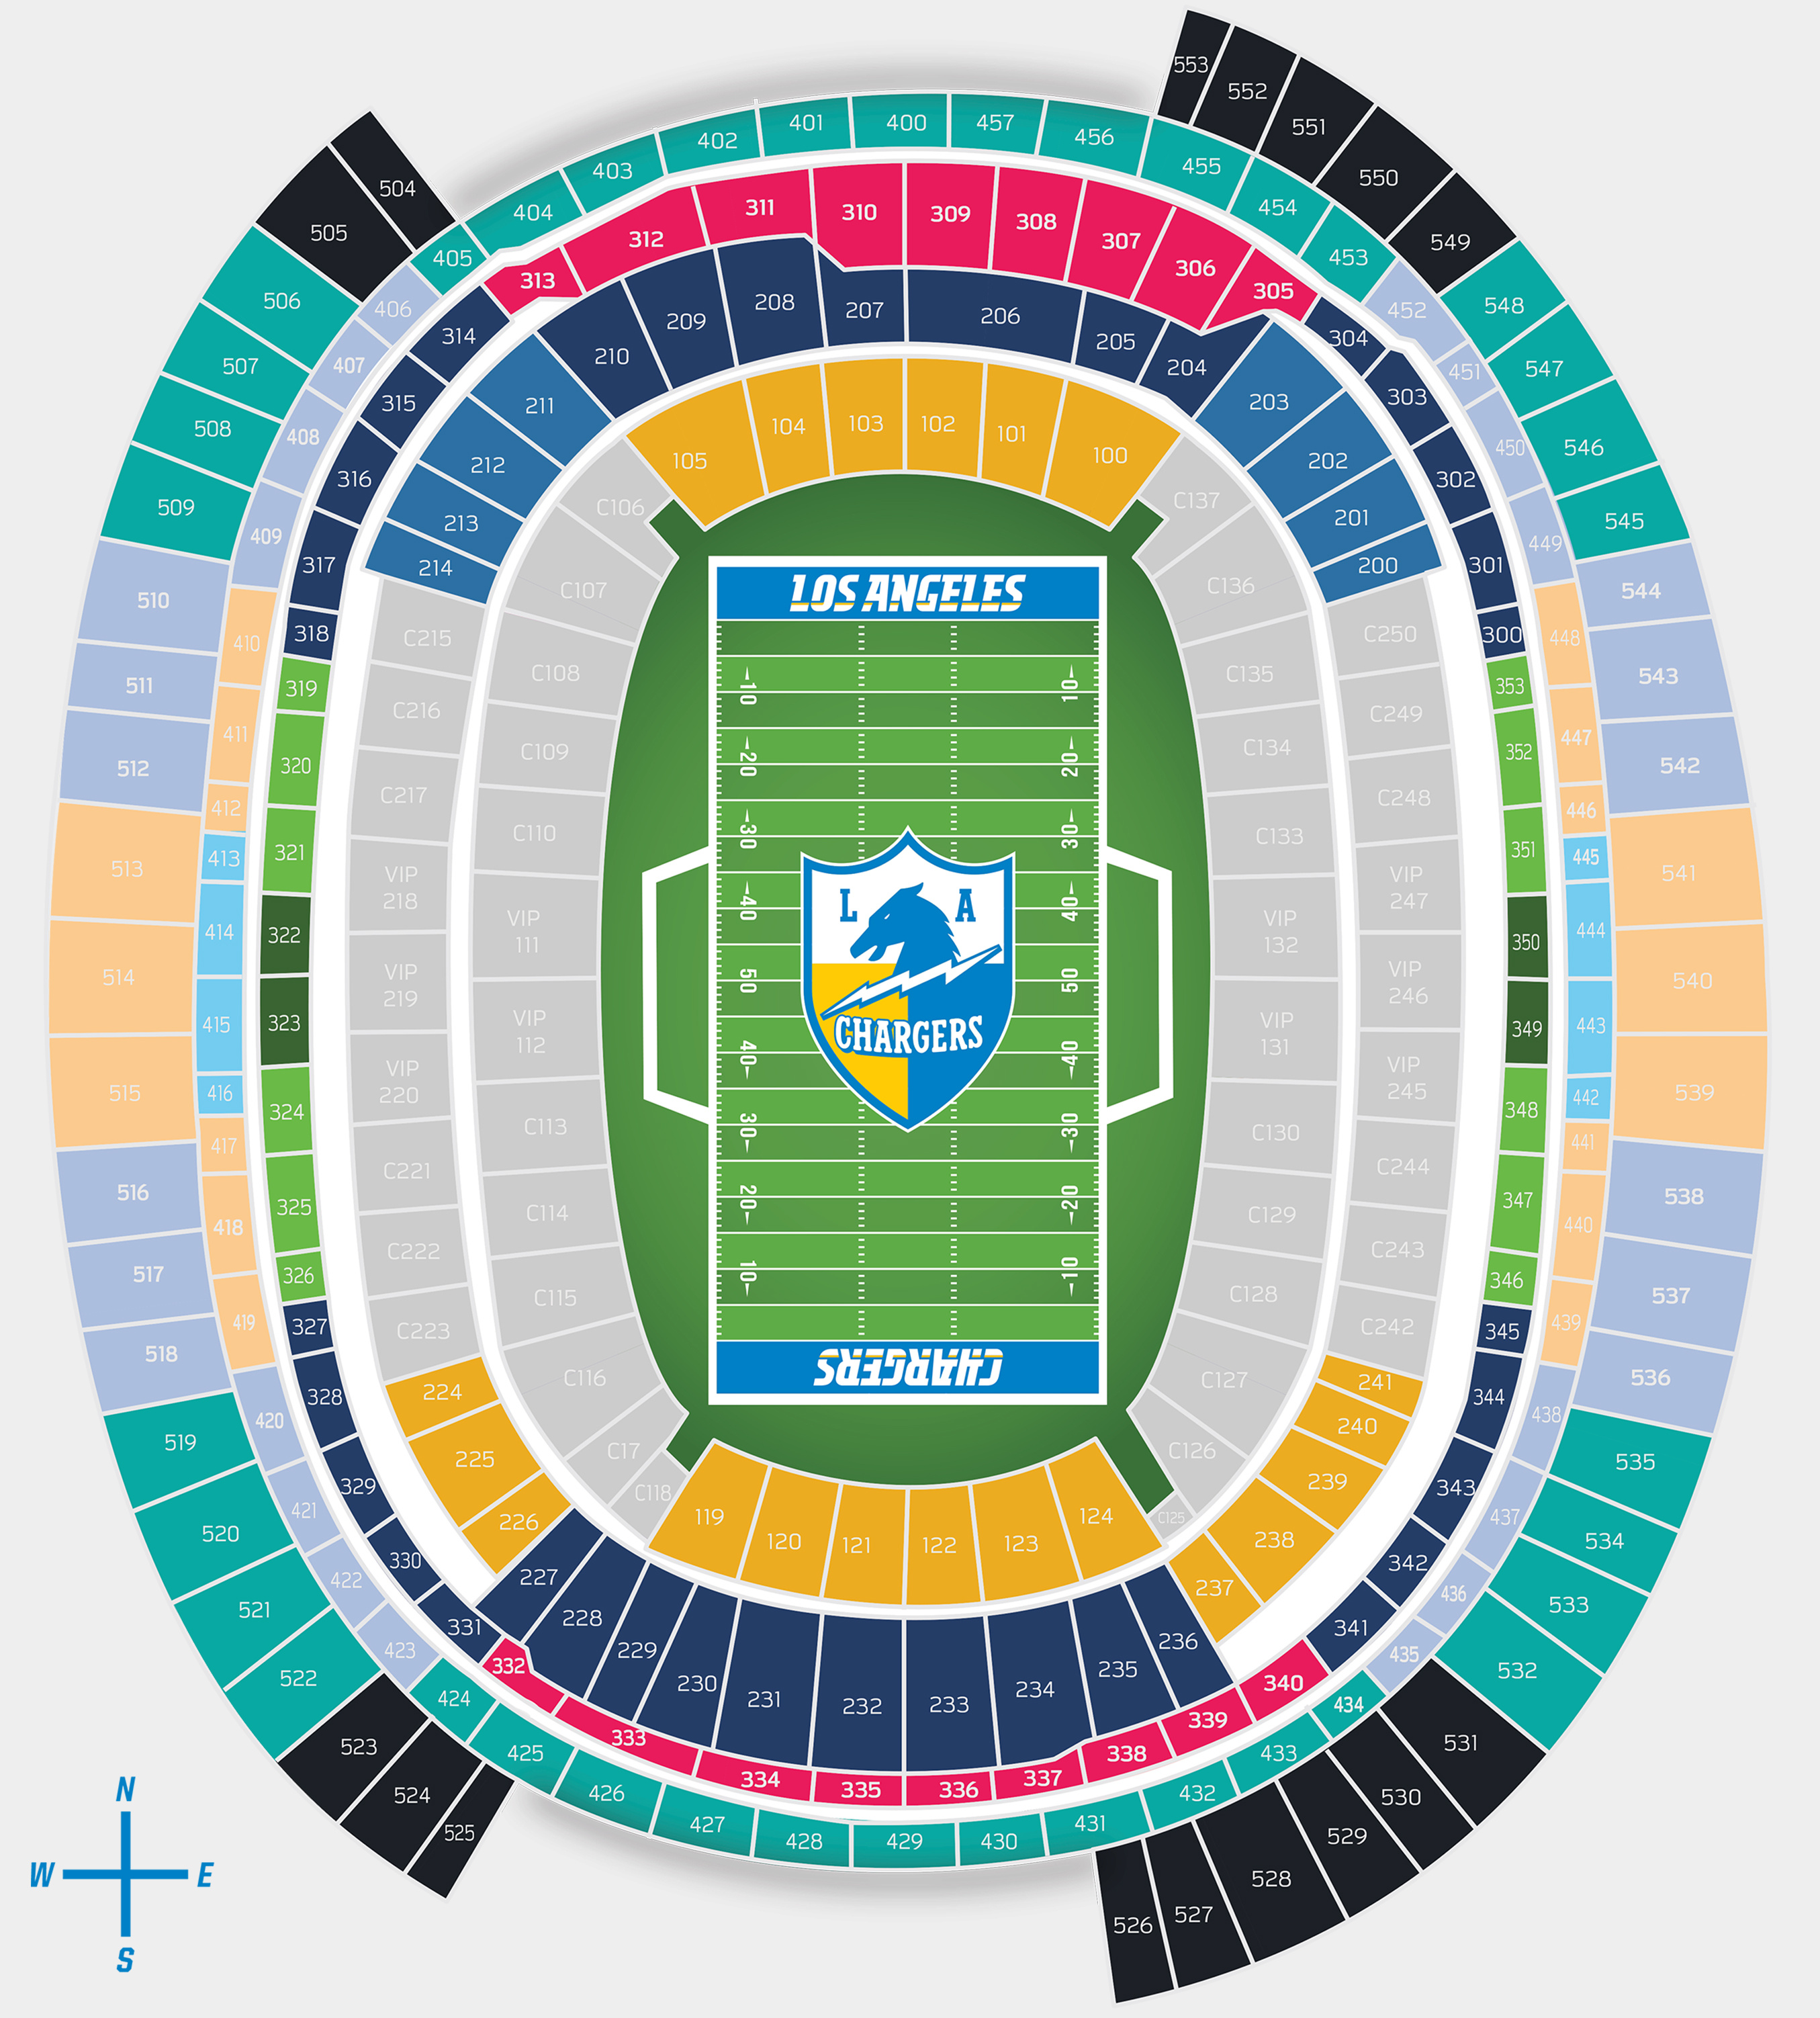 Chargers New Stadium: Los Angeles Chargers - Chargers.com